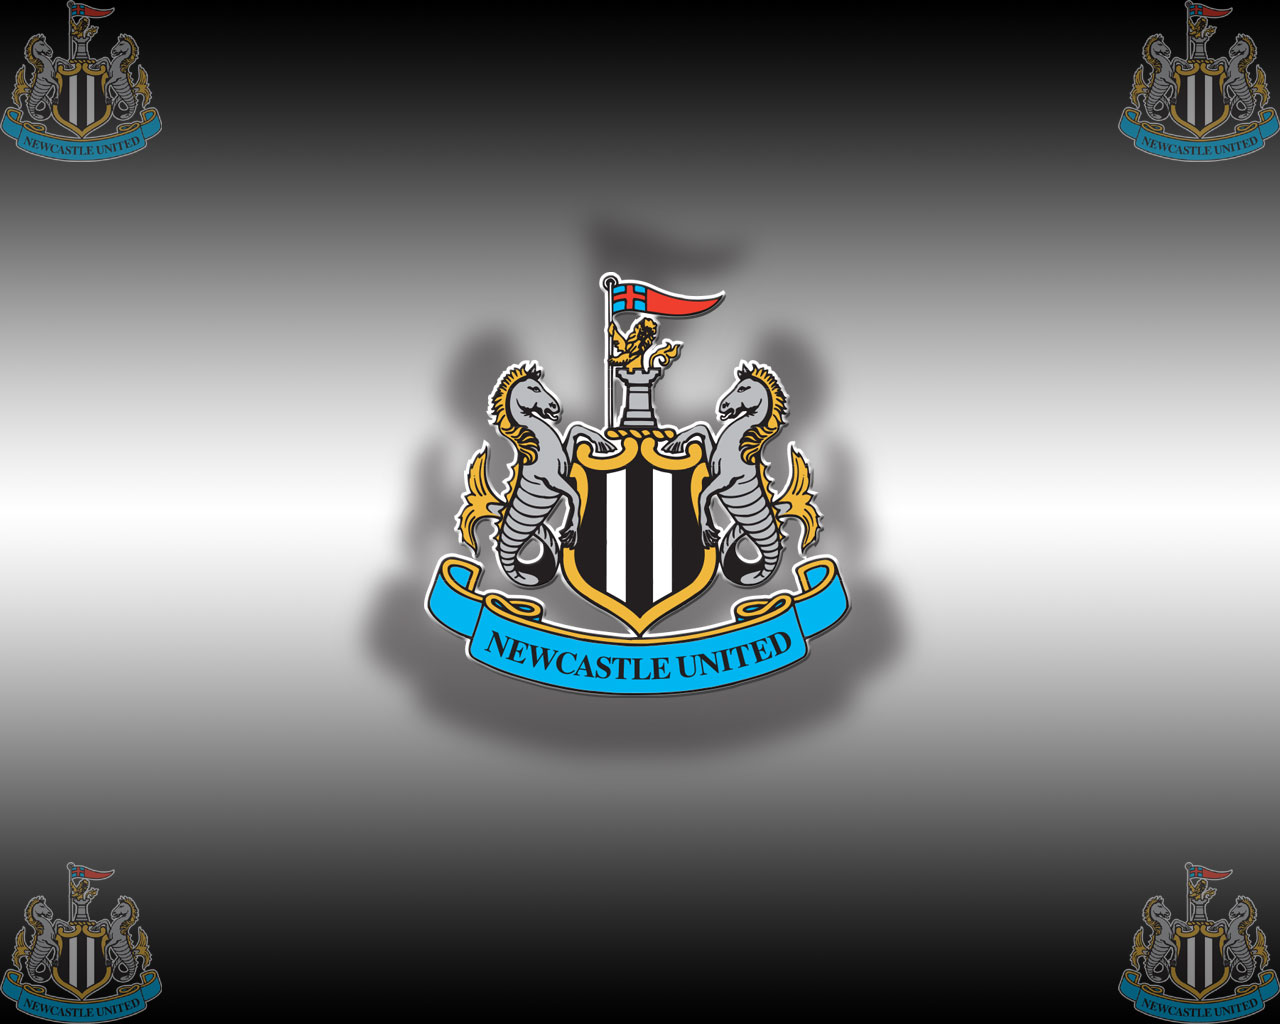 Free Download Newcastle United Football Wallpaper 1280x1024 For Your Desktop Mobile Tablet Explore 22 Newcastle United Wallpapers Newcastle United Wallpapers Newcastle Wallpaper Leeds United Wallpapers